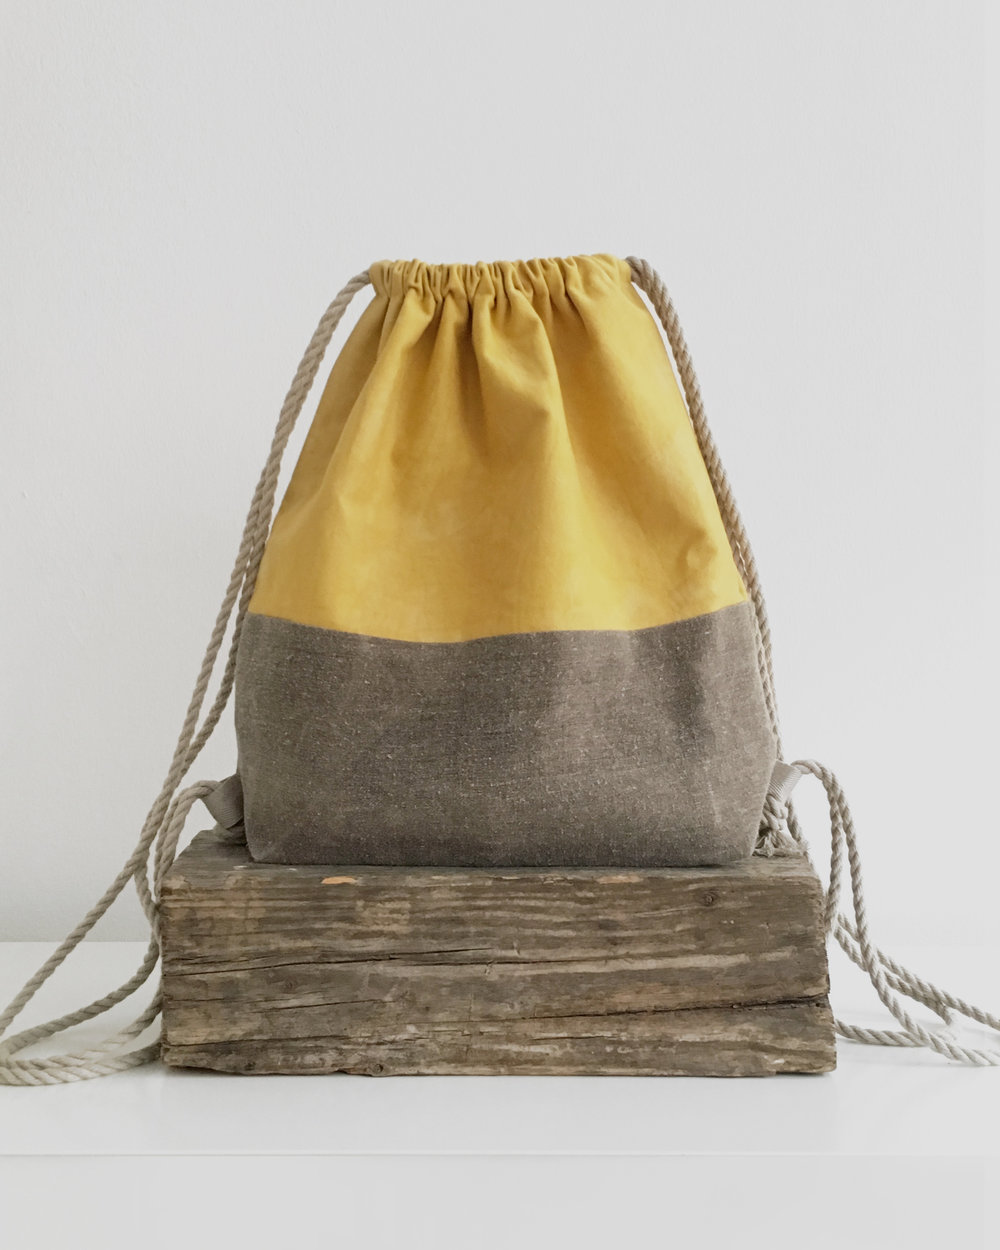 Marigold dyed drawstring backpack - bright yellow straight from plants!